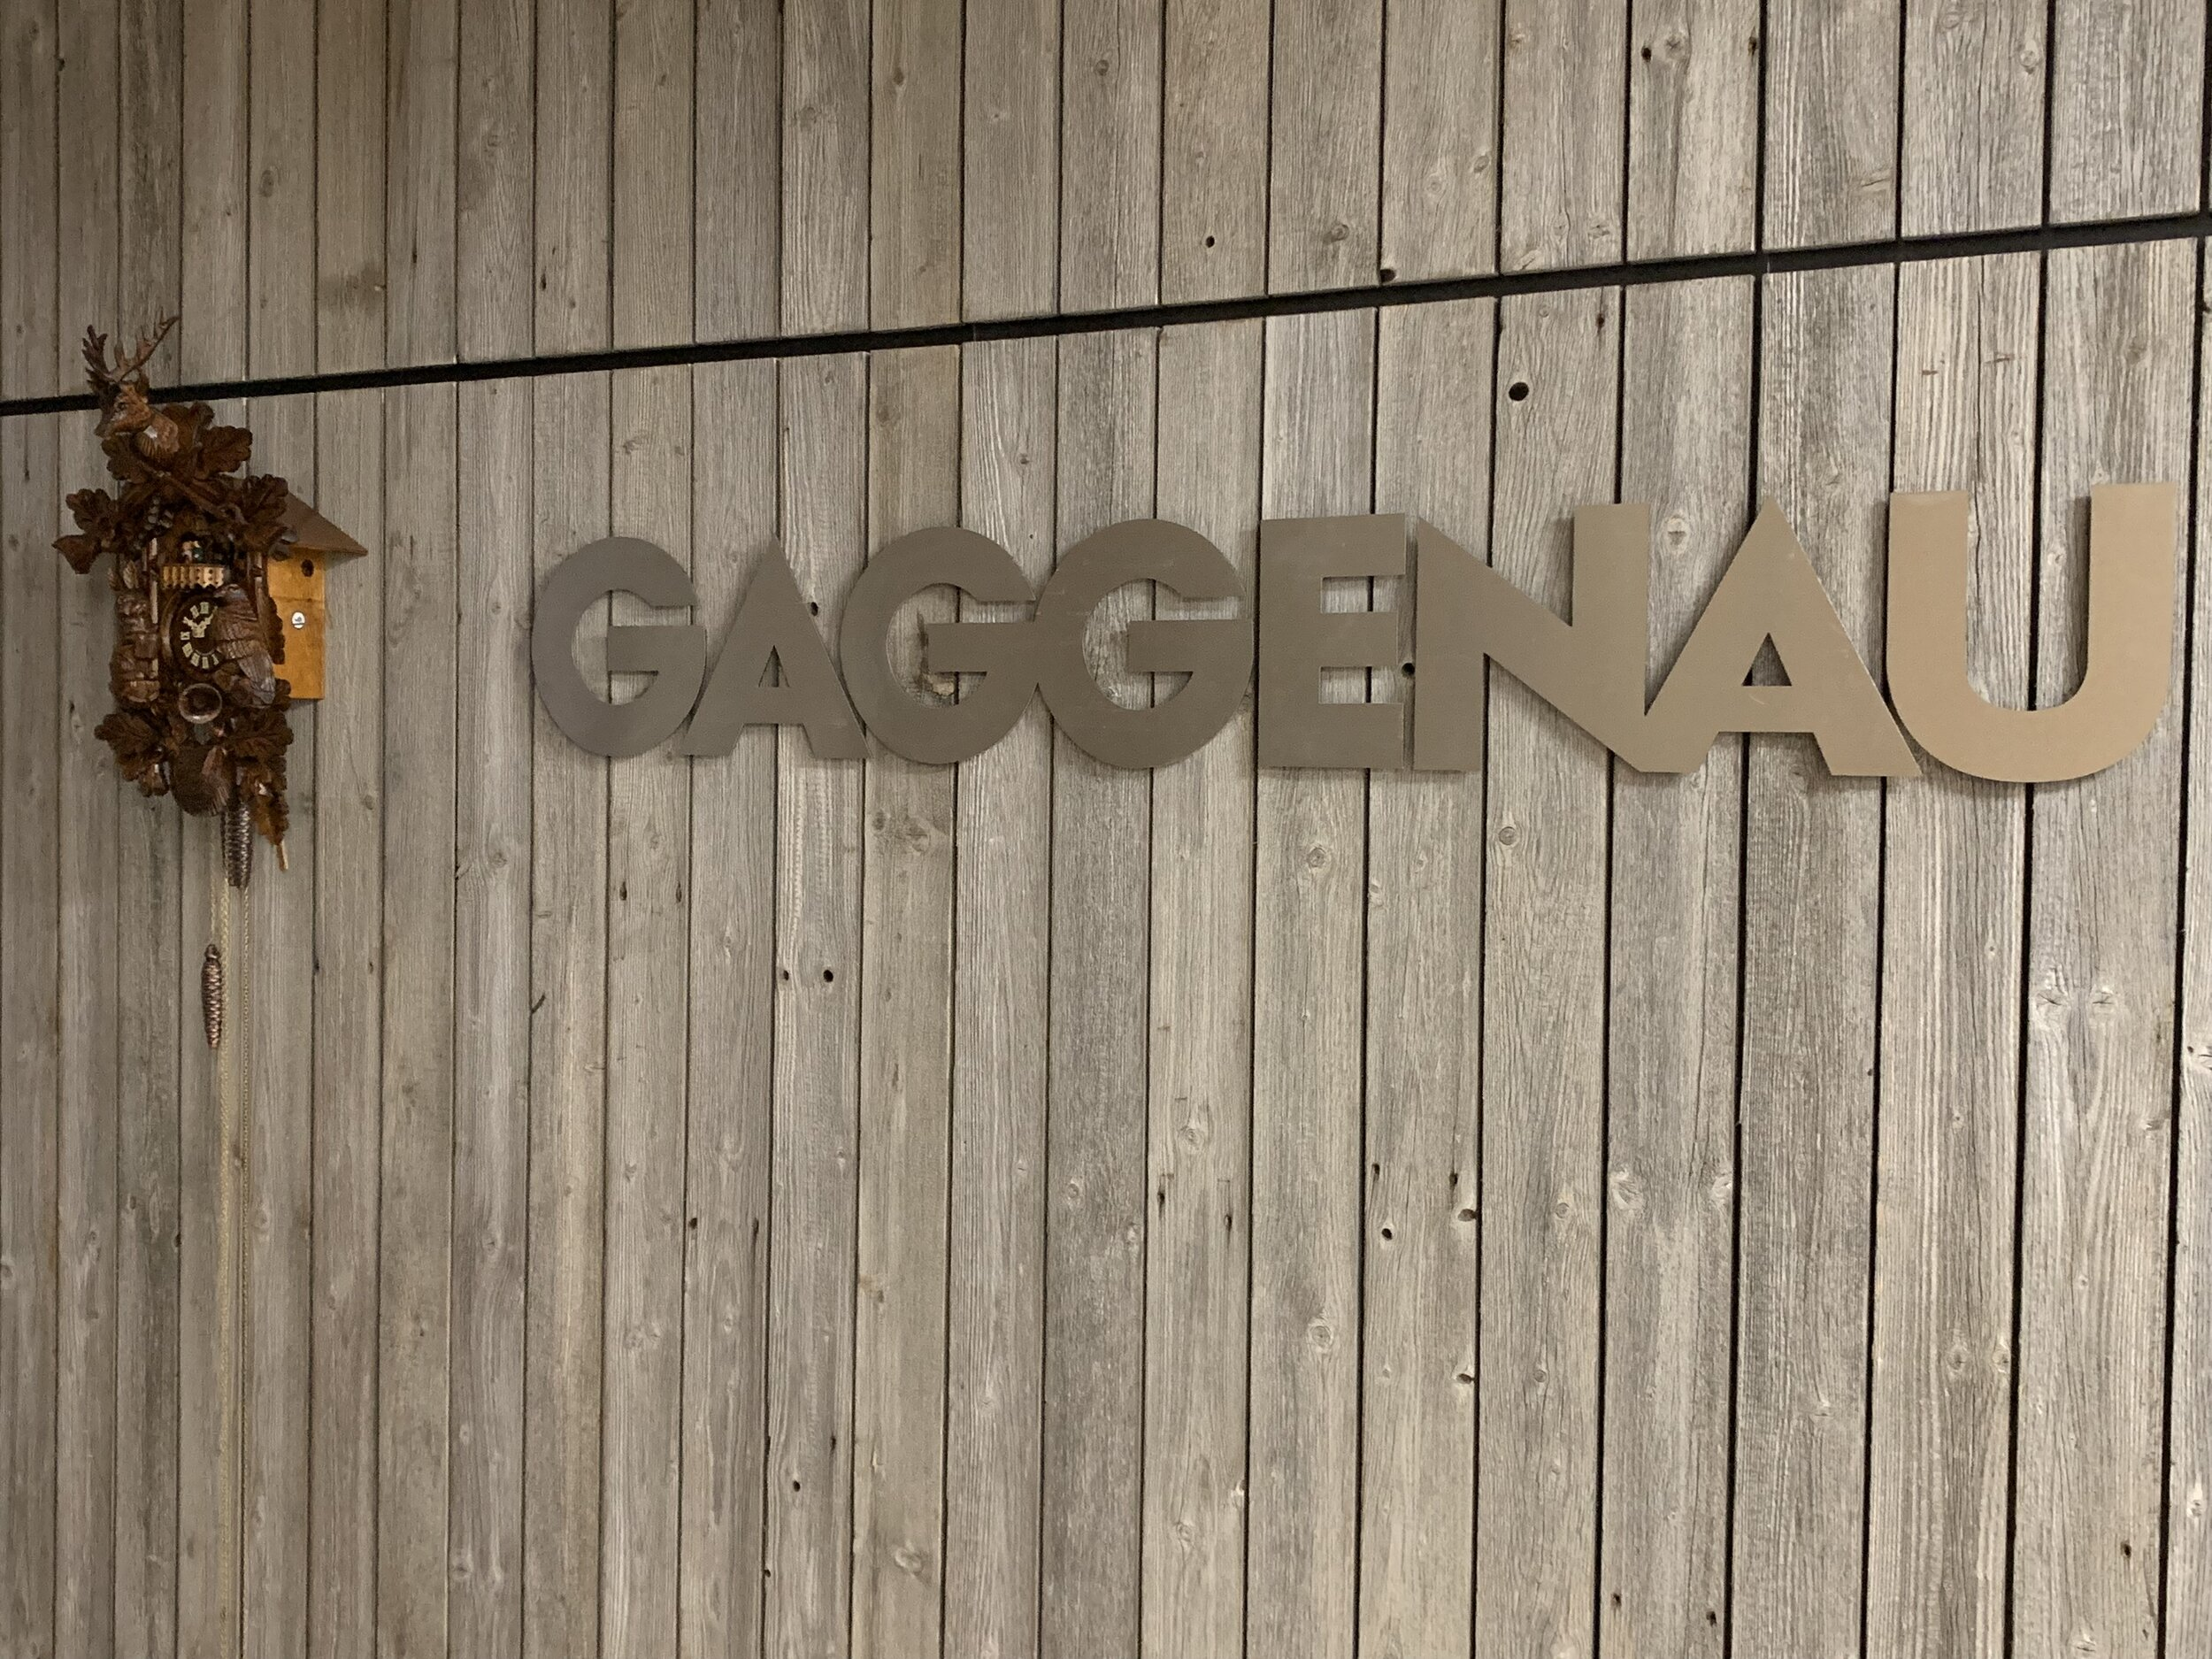 A cuckoo clock is hung next to the recognizable sign of Gaggenau, inside the devoted showroom at AUTCOhome in Fenton.